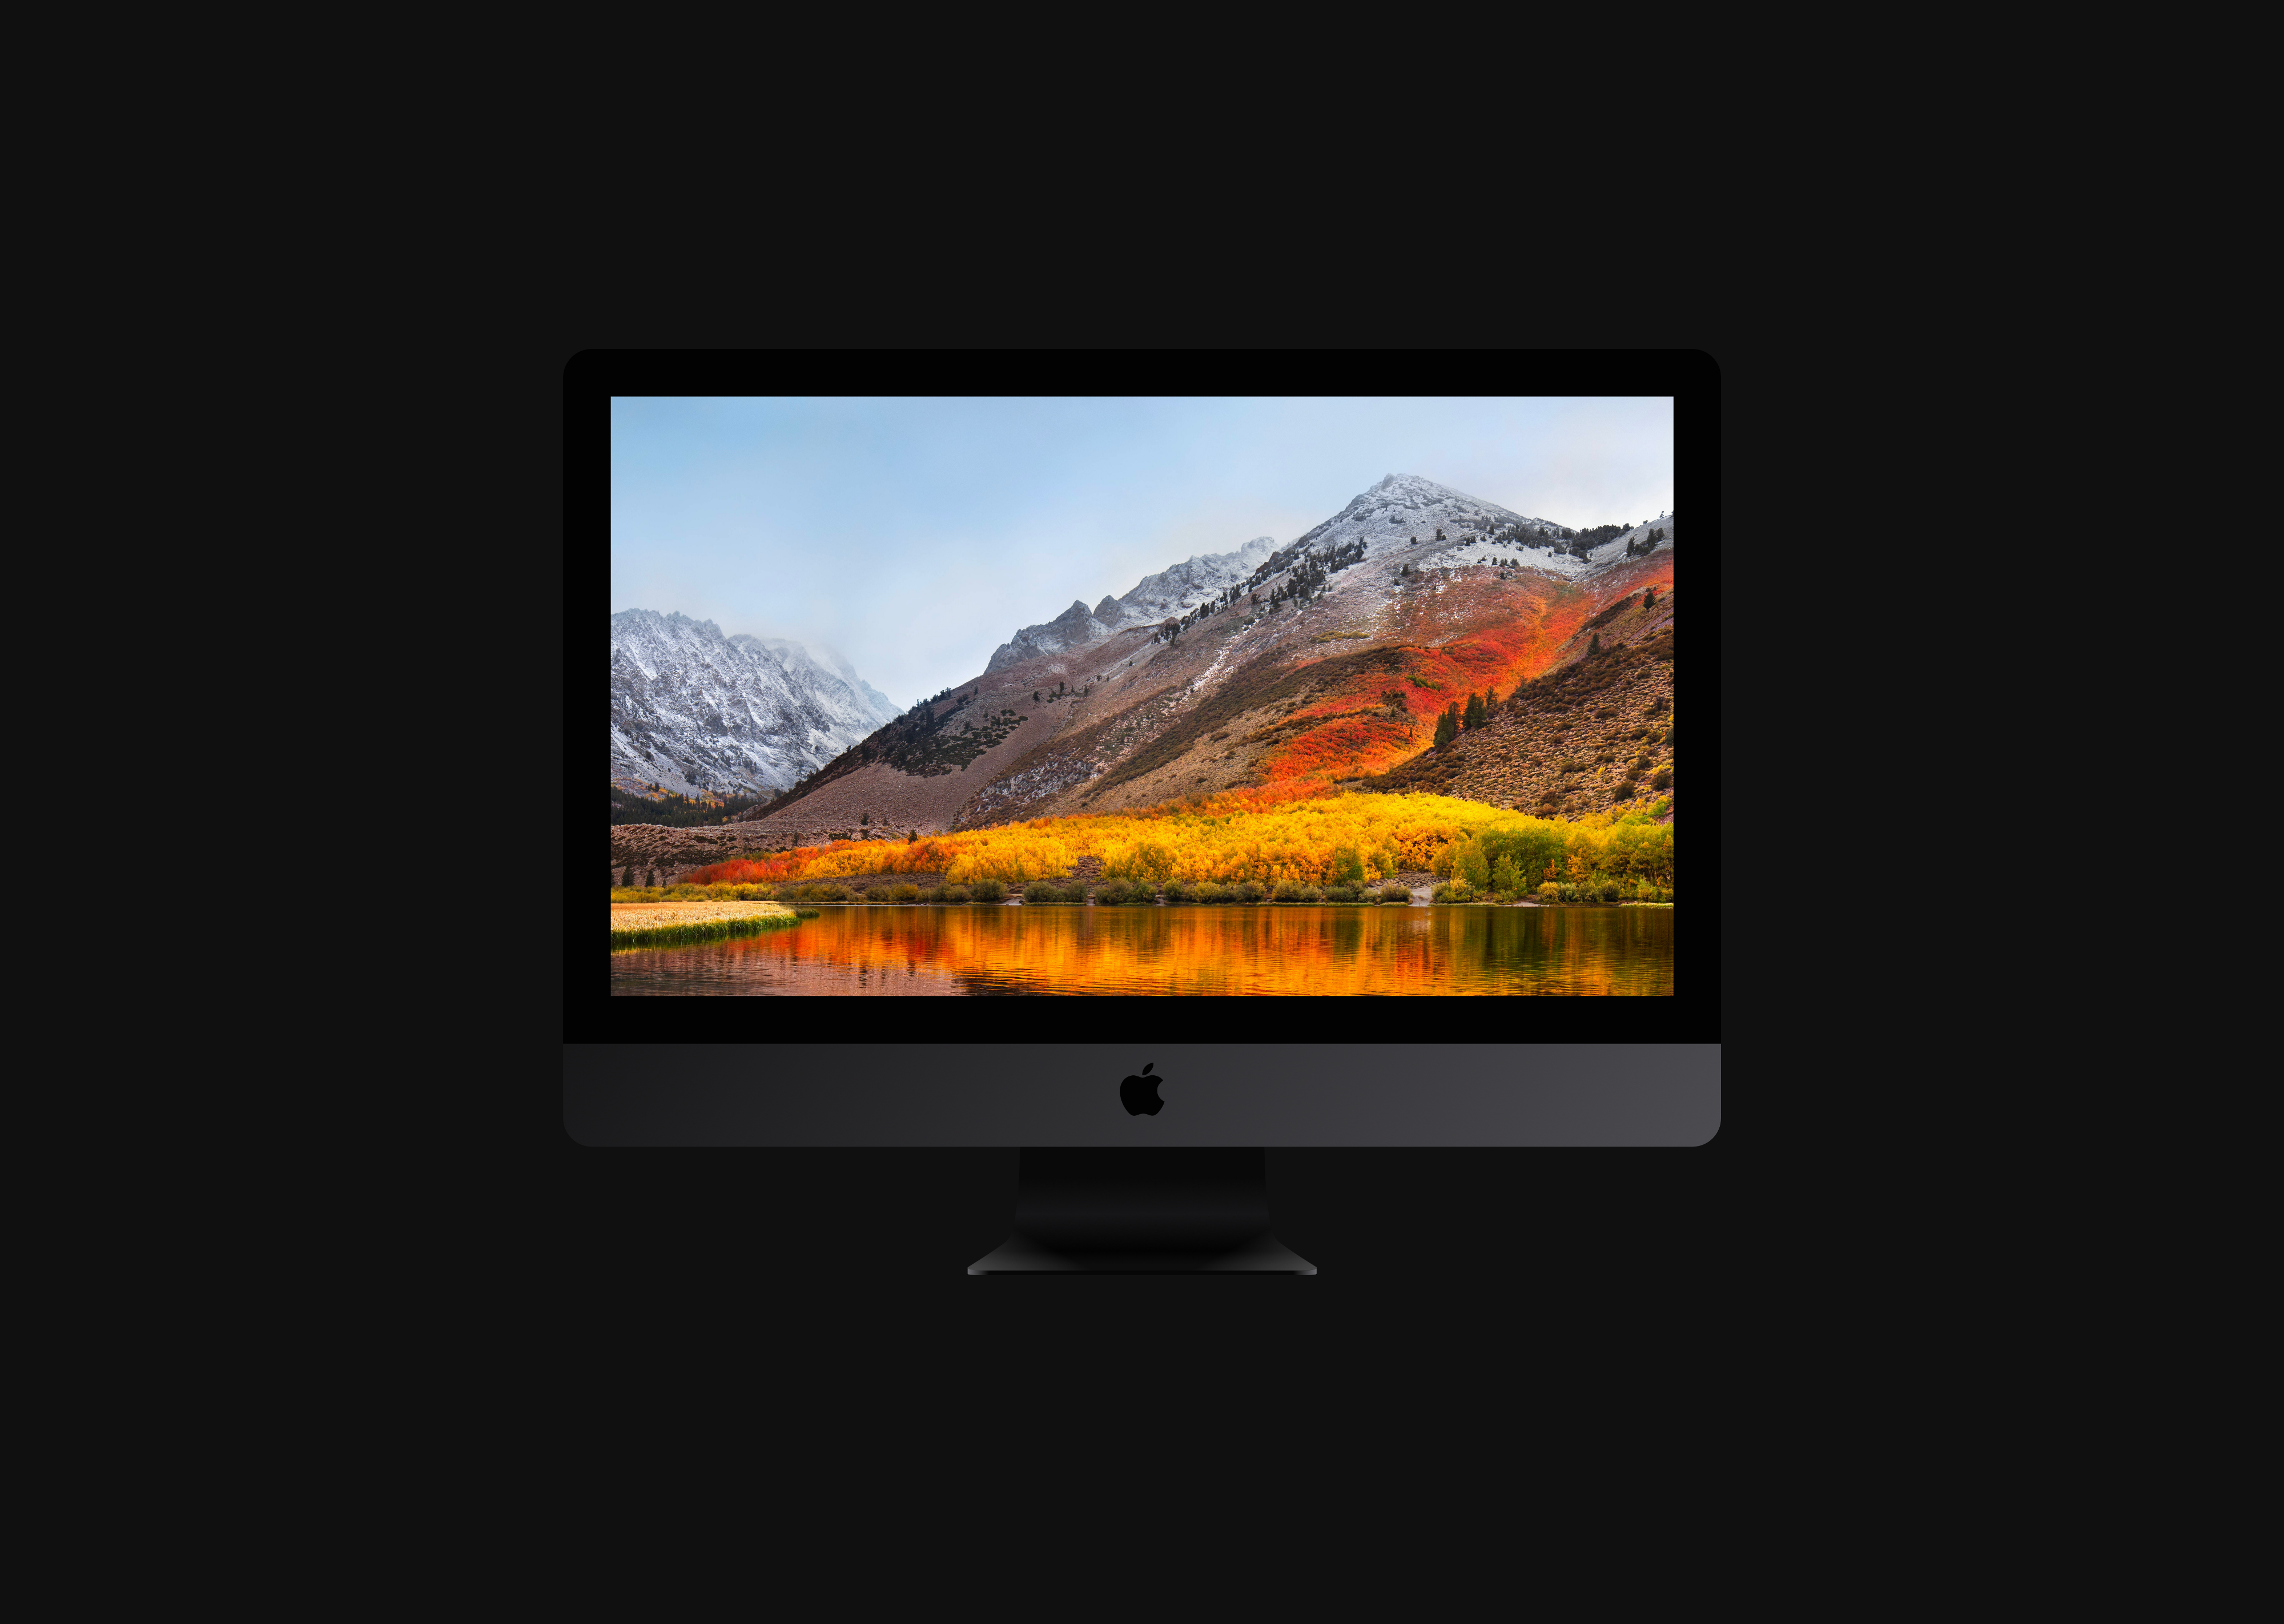 Download a FREE Sketch Mockup of the New 2017 iMac Pro